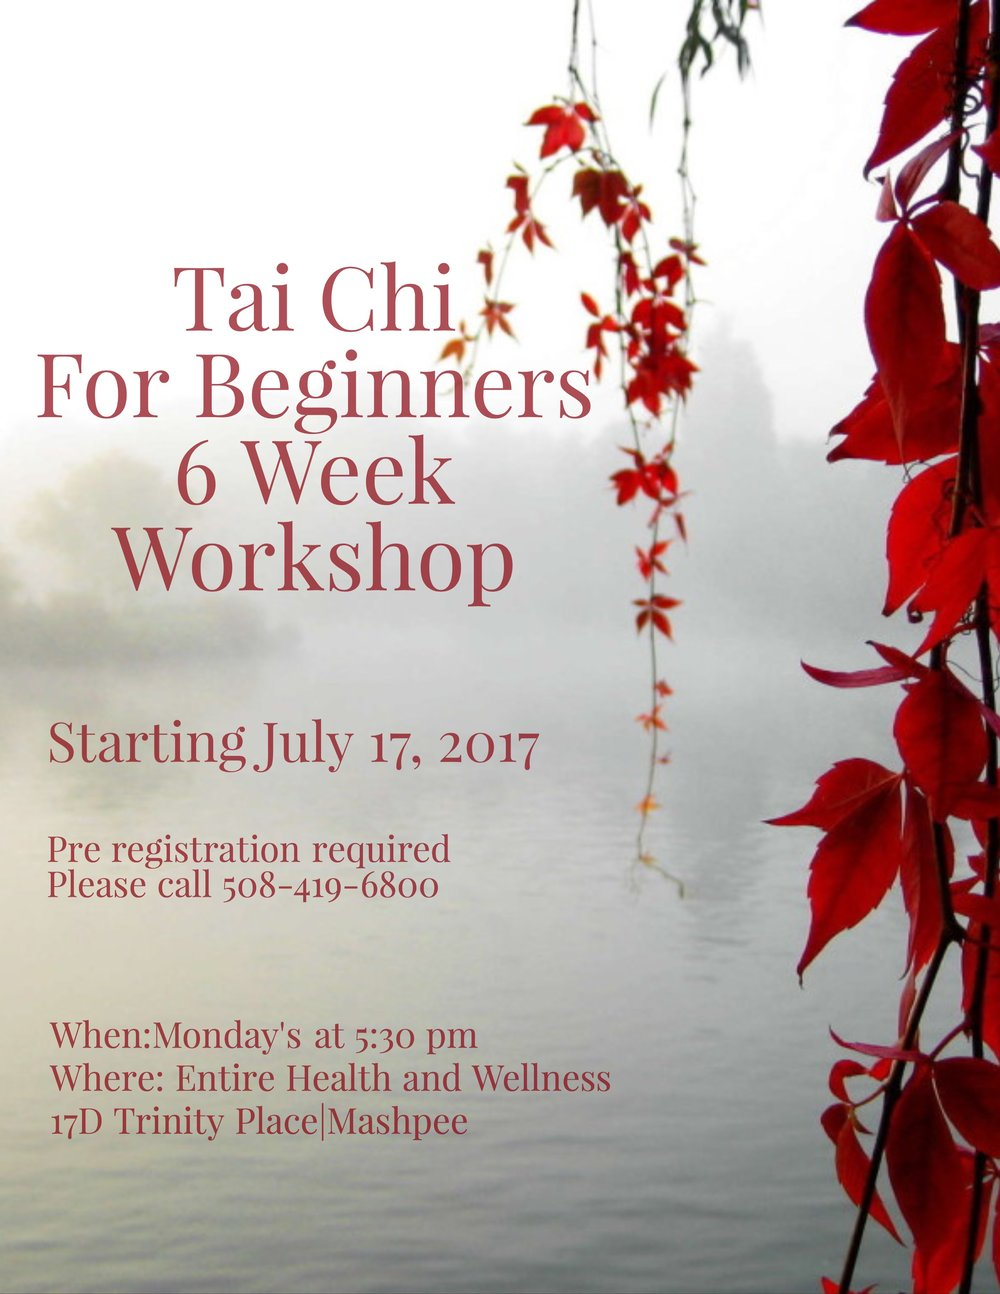 Tai Chi For Beginners  - Finally, a Tai Chi class will be offered at the Entire Health and Wellness location at 17D Trinity Place in Mashpee. This marks the first of an ongoing series of classes that will offer the ancient Chinese practice of Tai Chi taught by Dr. Sean Foss, a Naturopathic doctor and acupuncturist. Dr. Foss has 25 years experience in martial arts. This unique form of exercise combines mind, body and spirit into a fluid means of healing the body's immune system, improving strength and flexibility, reducing pain and improving overall quality of life. CLASS FULL